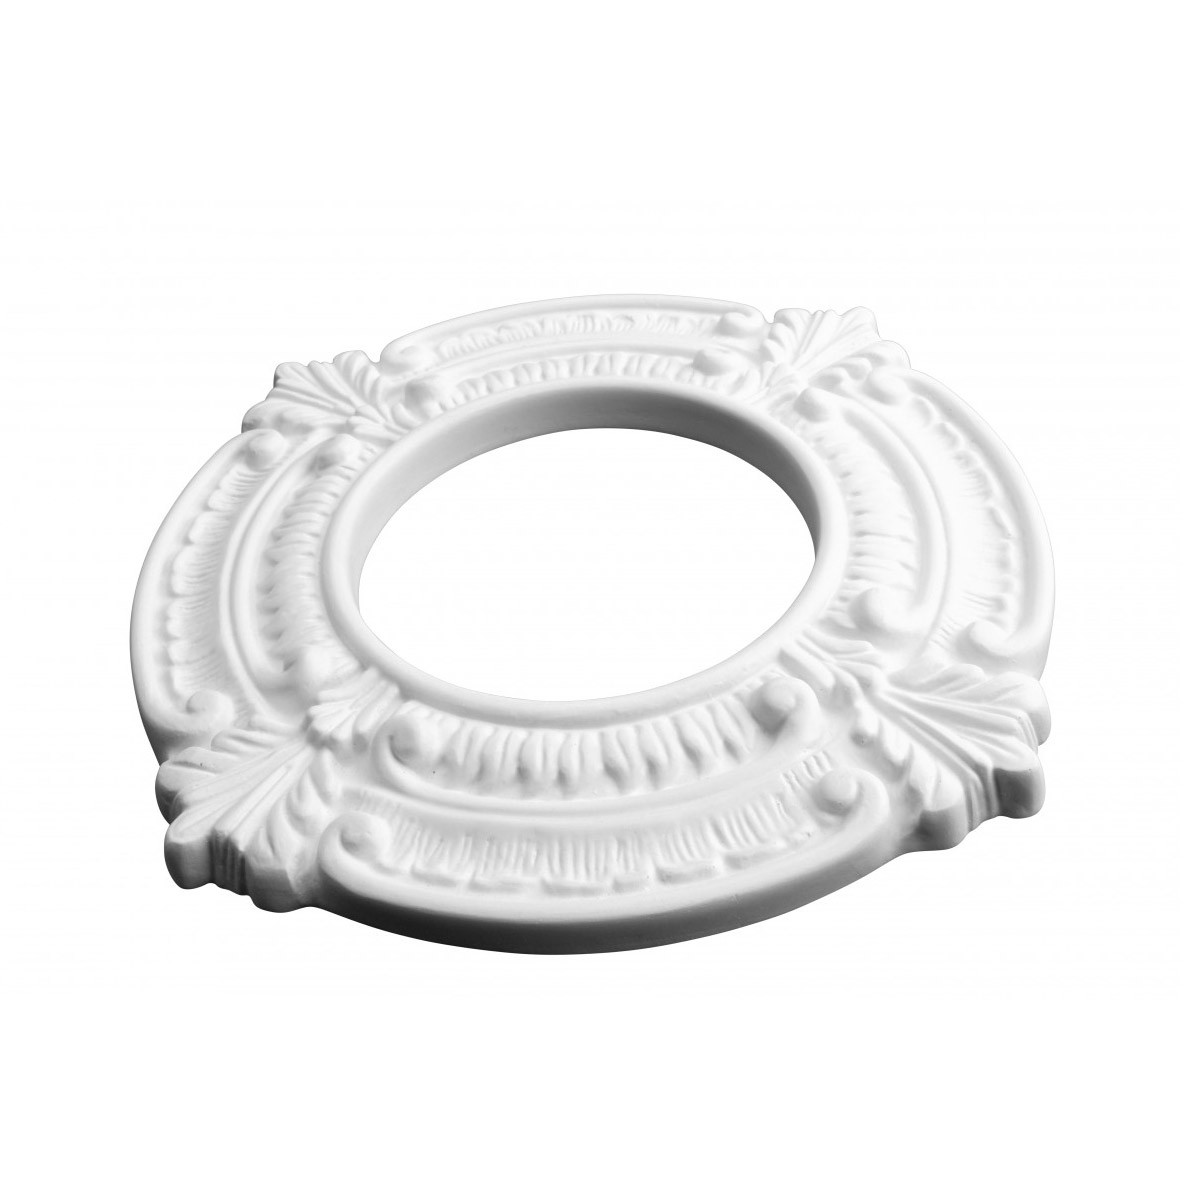 2 Spotlight Rings White Urethane 4 ID Set of 2 ceiling medallion lighting decorative decor diy classic traditional antique vintage rustic artisan victorian colonial authentic